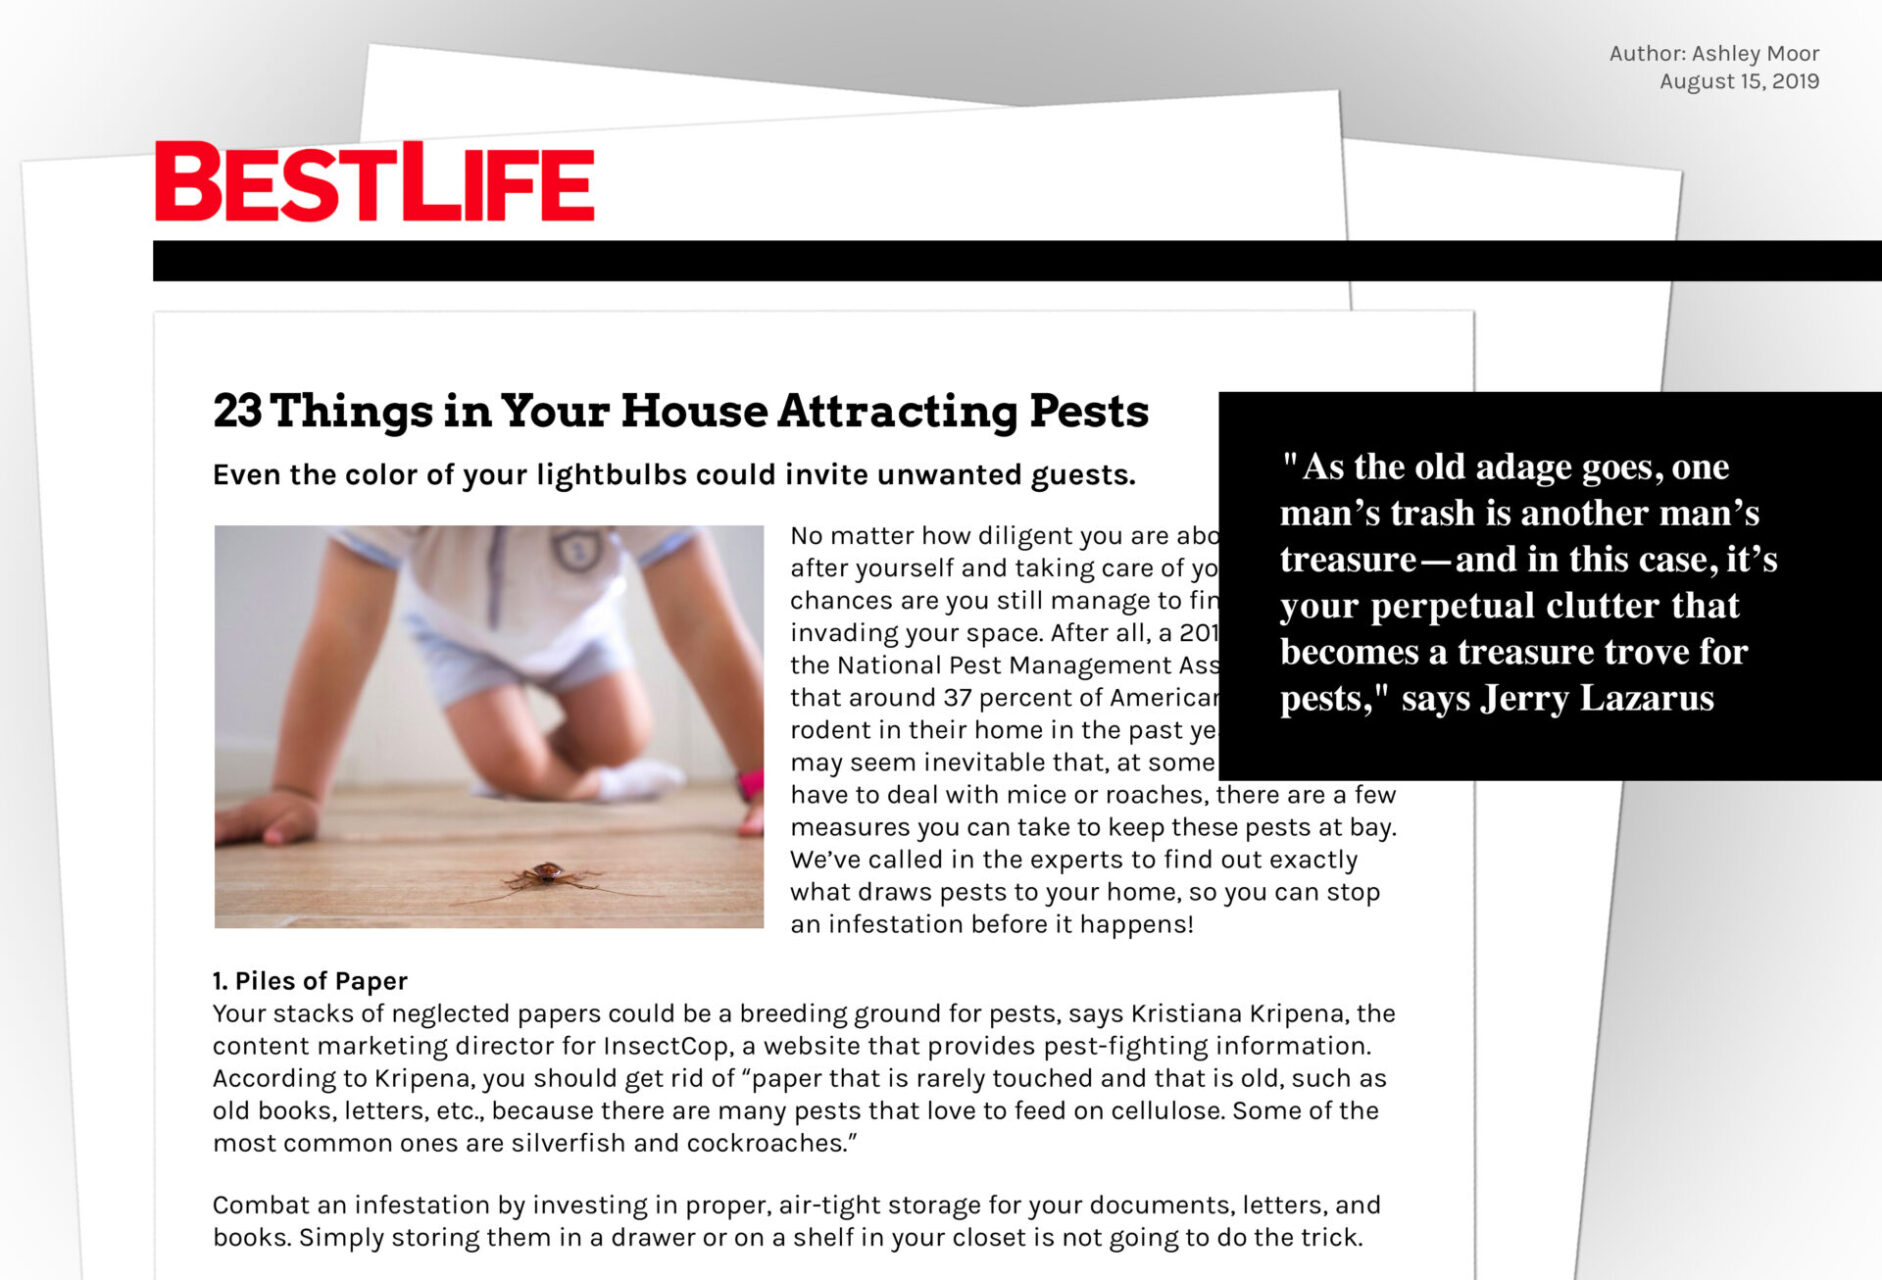 Braman-BestLife-23-Things-Attracting-Pests-Article